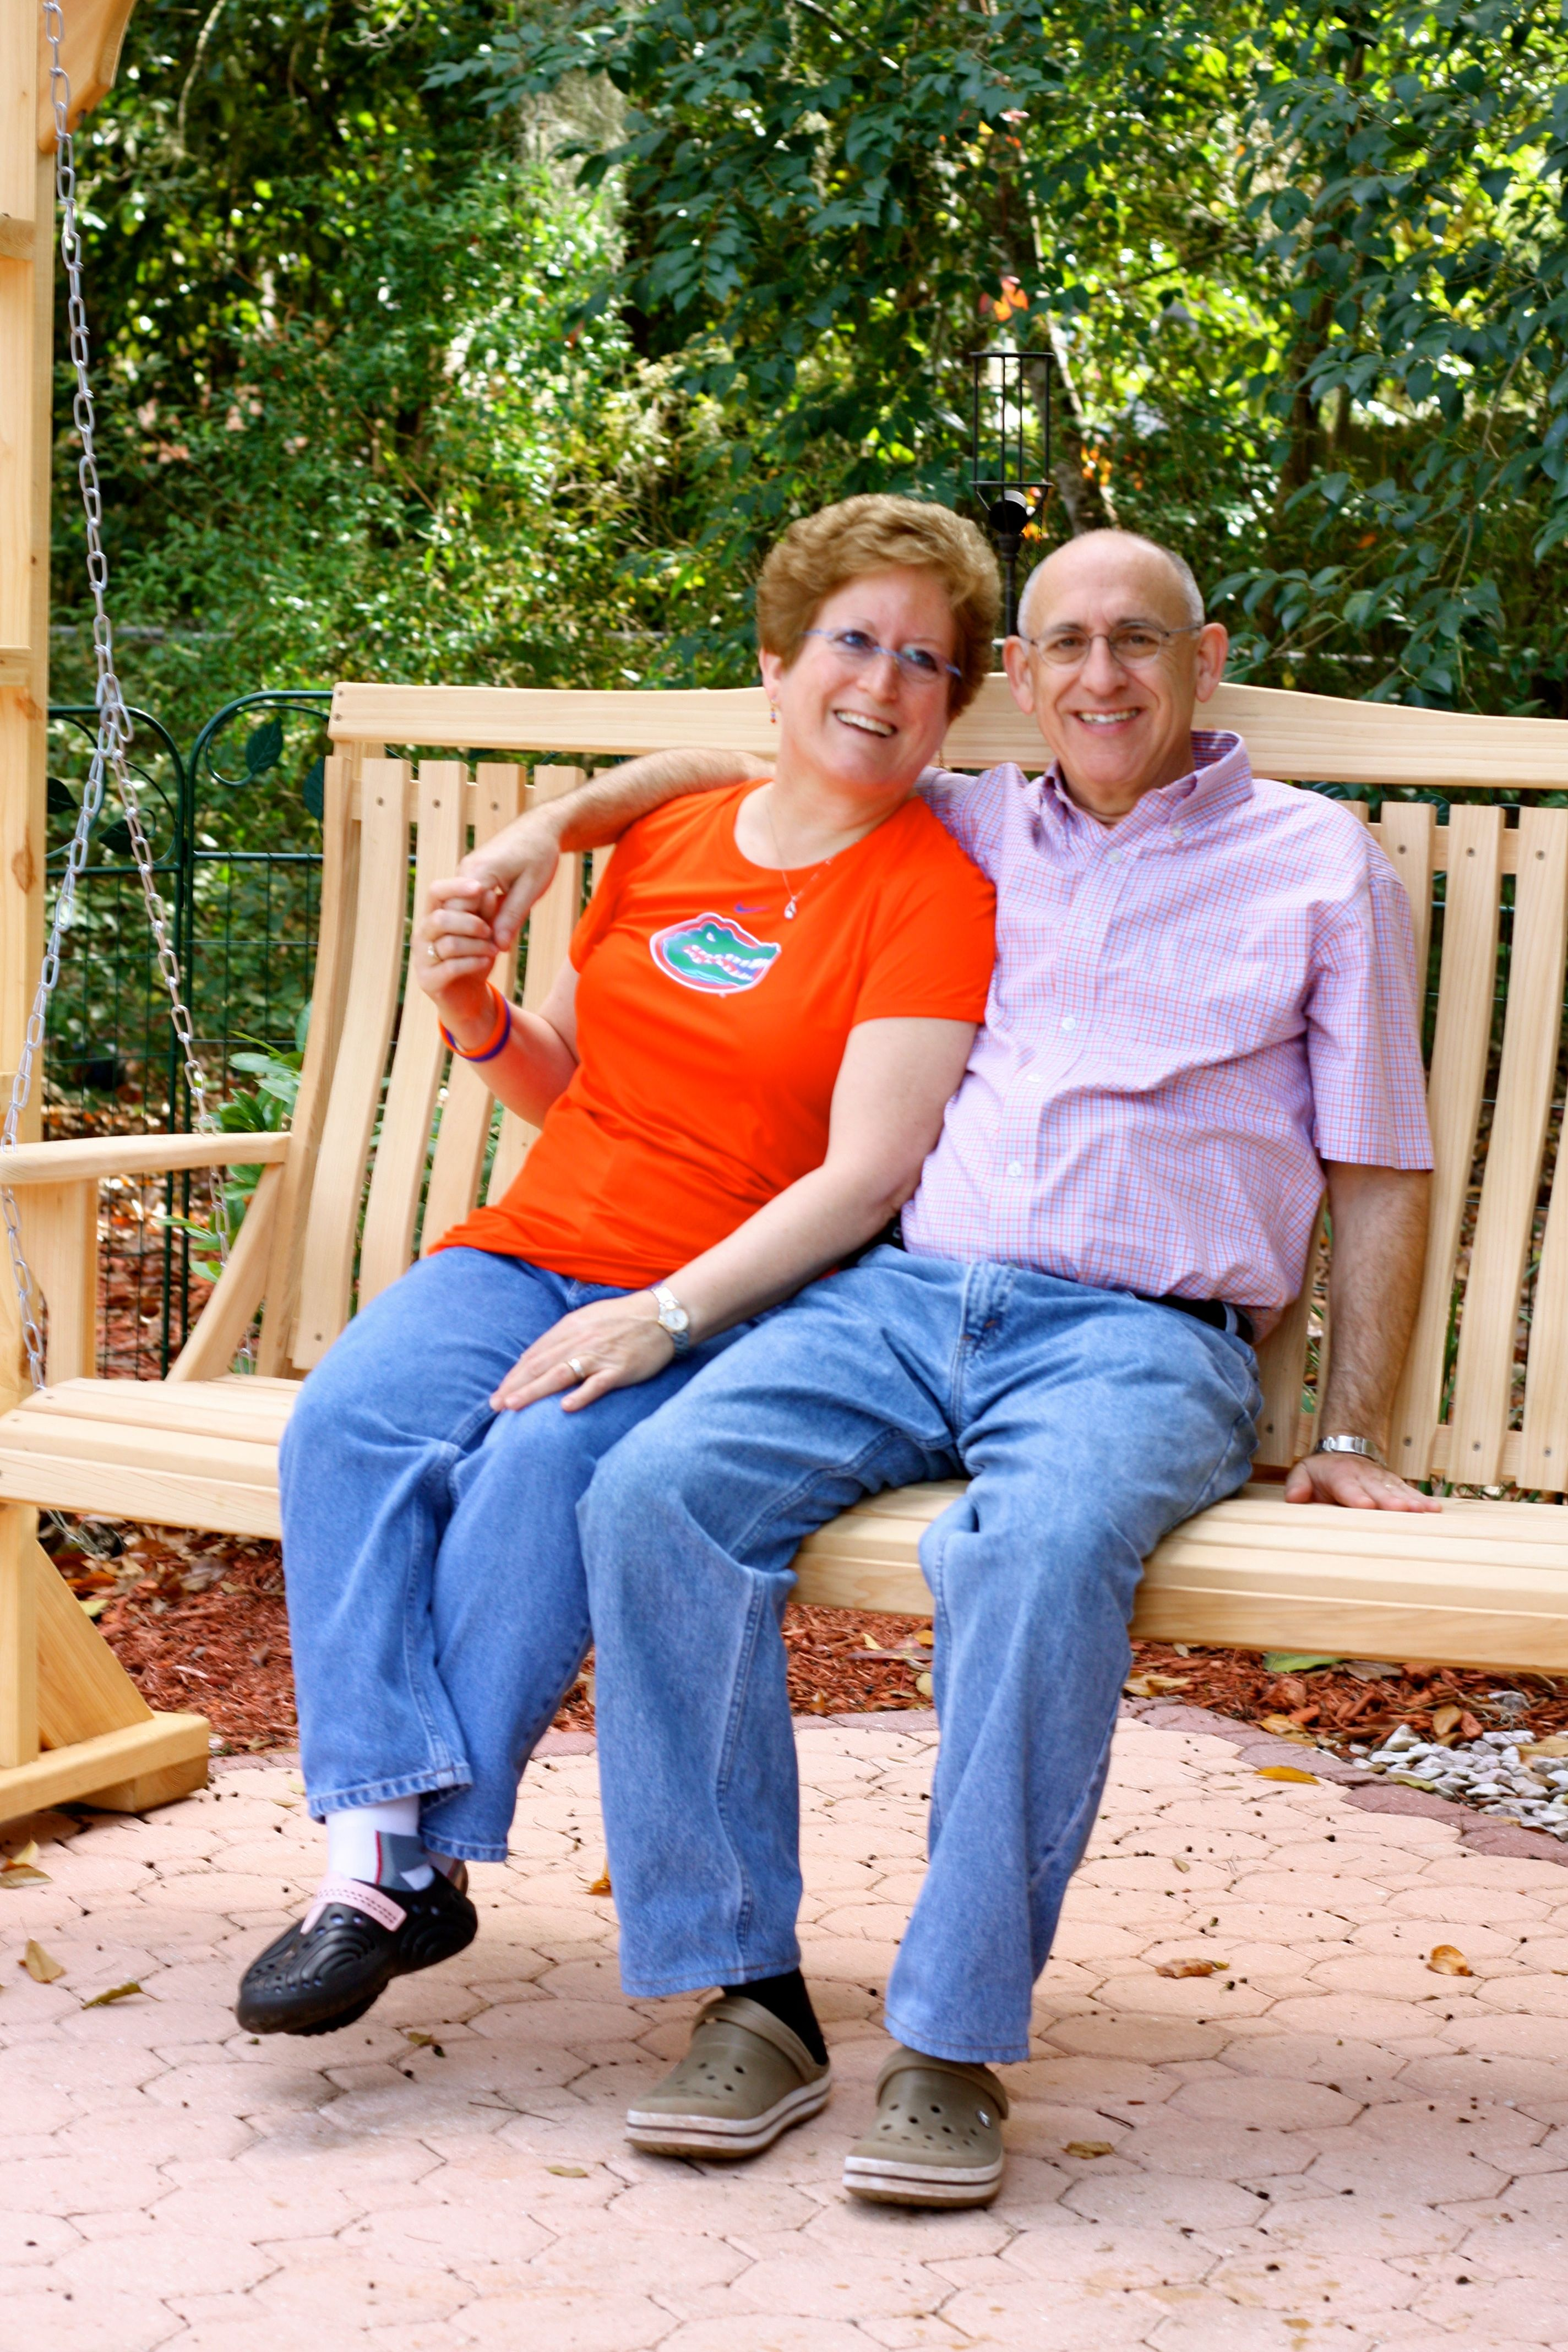 Bob Cohen & his wife sitting on a swing.